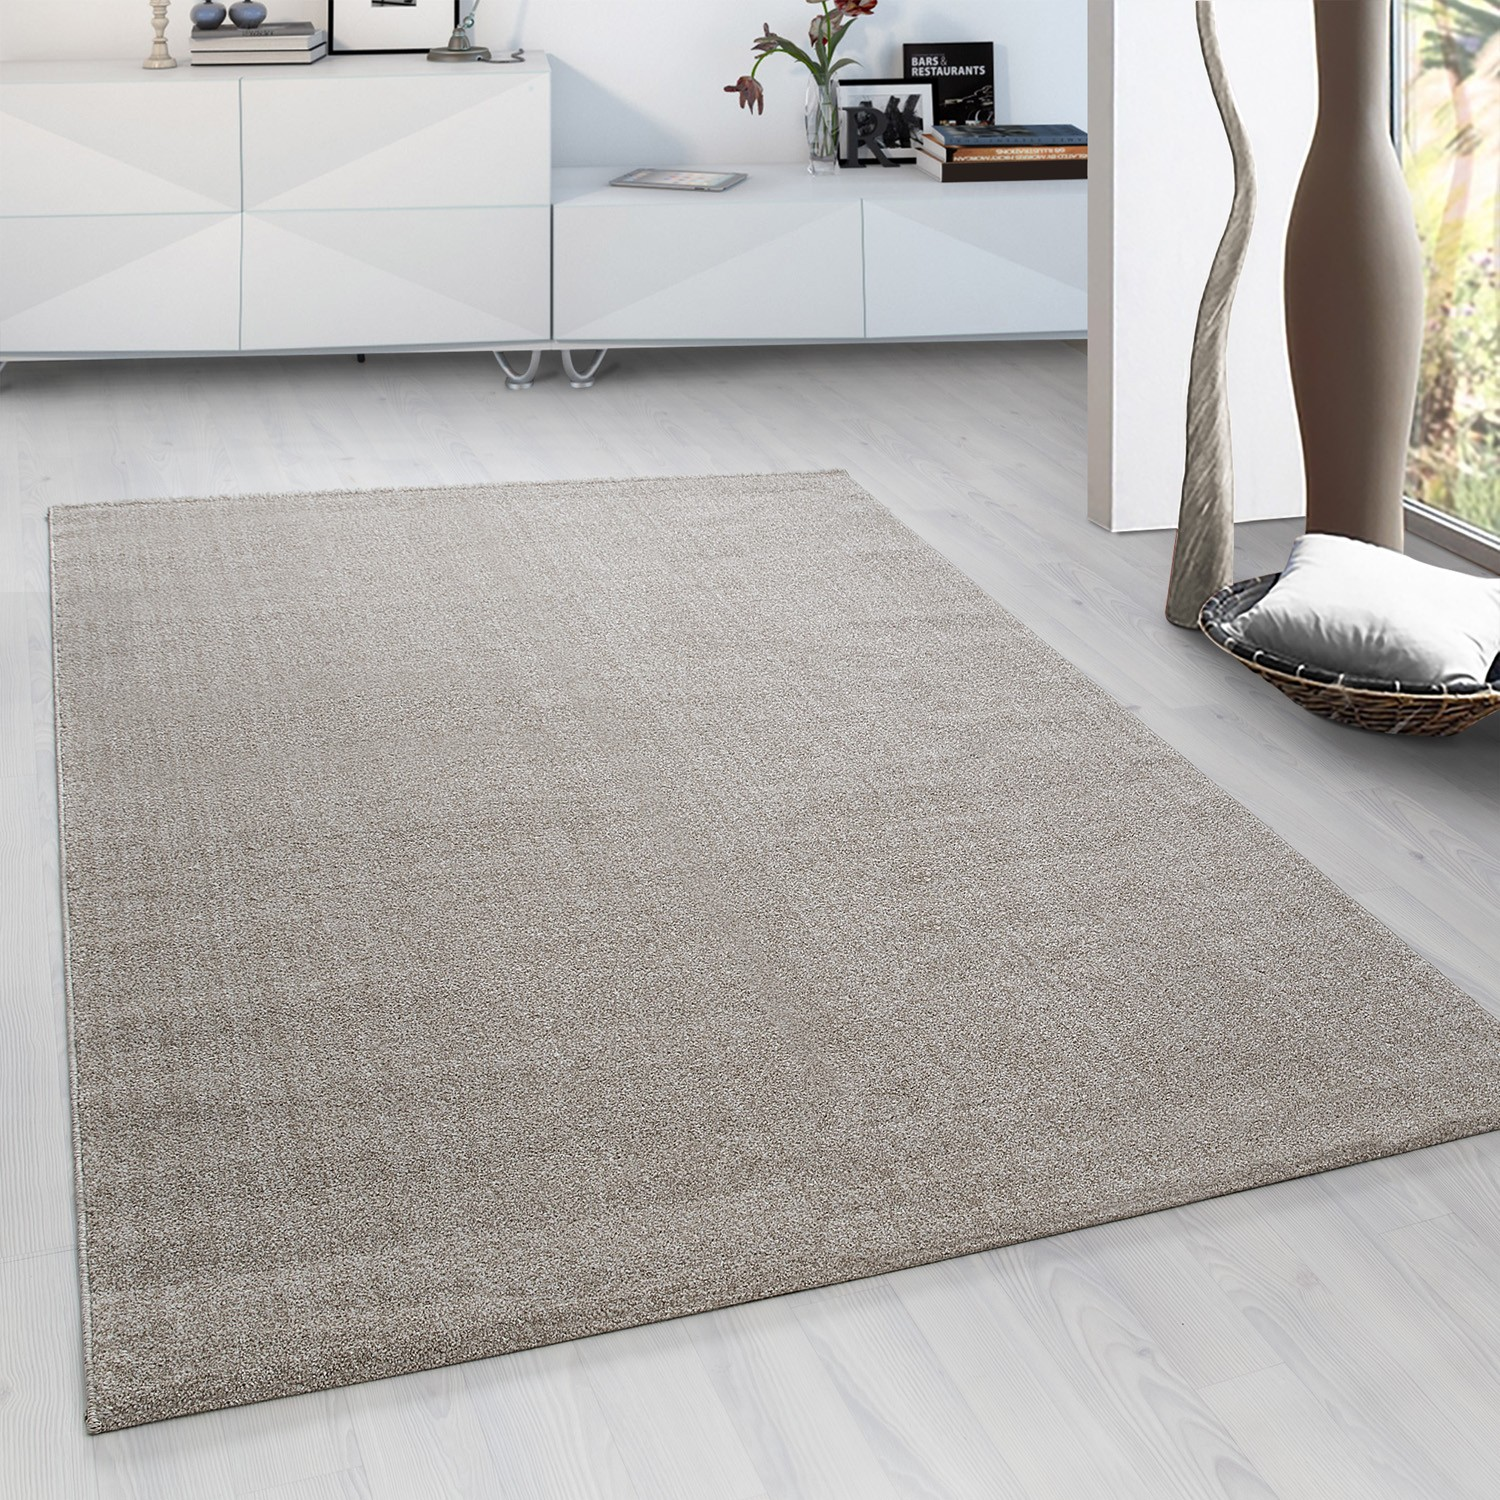 tapis a courtes meches microfibre doux taupe beige velluto